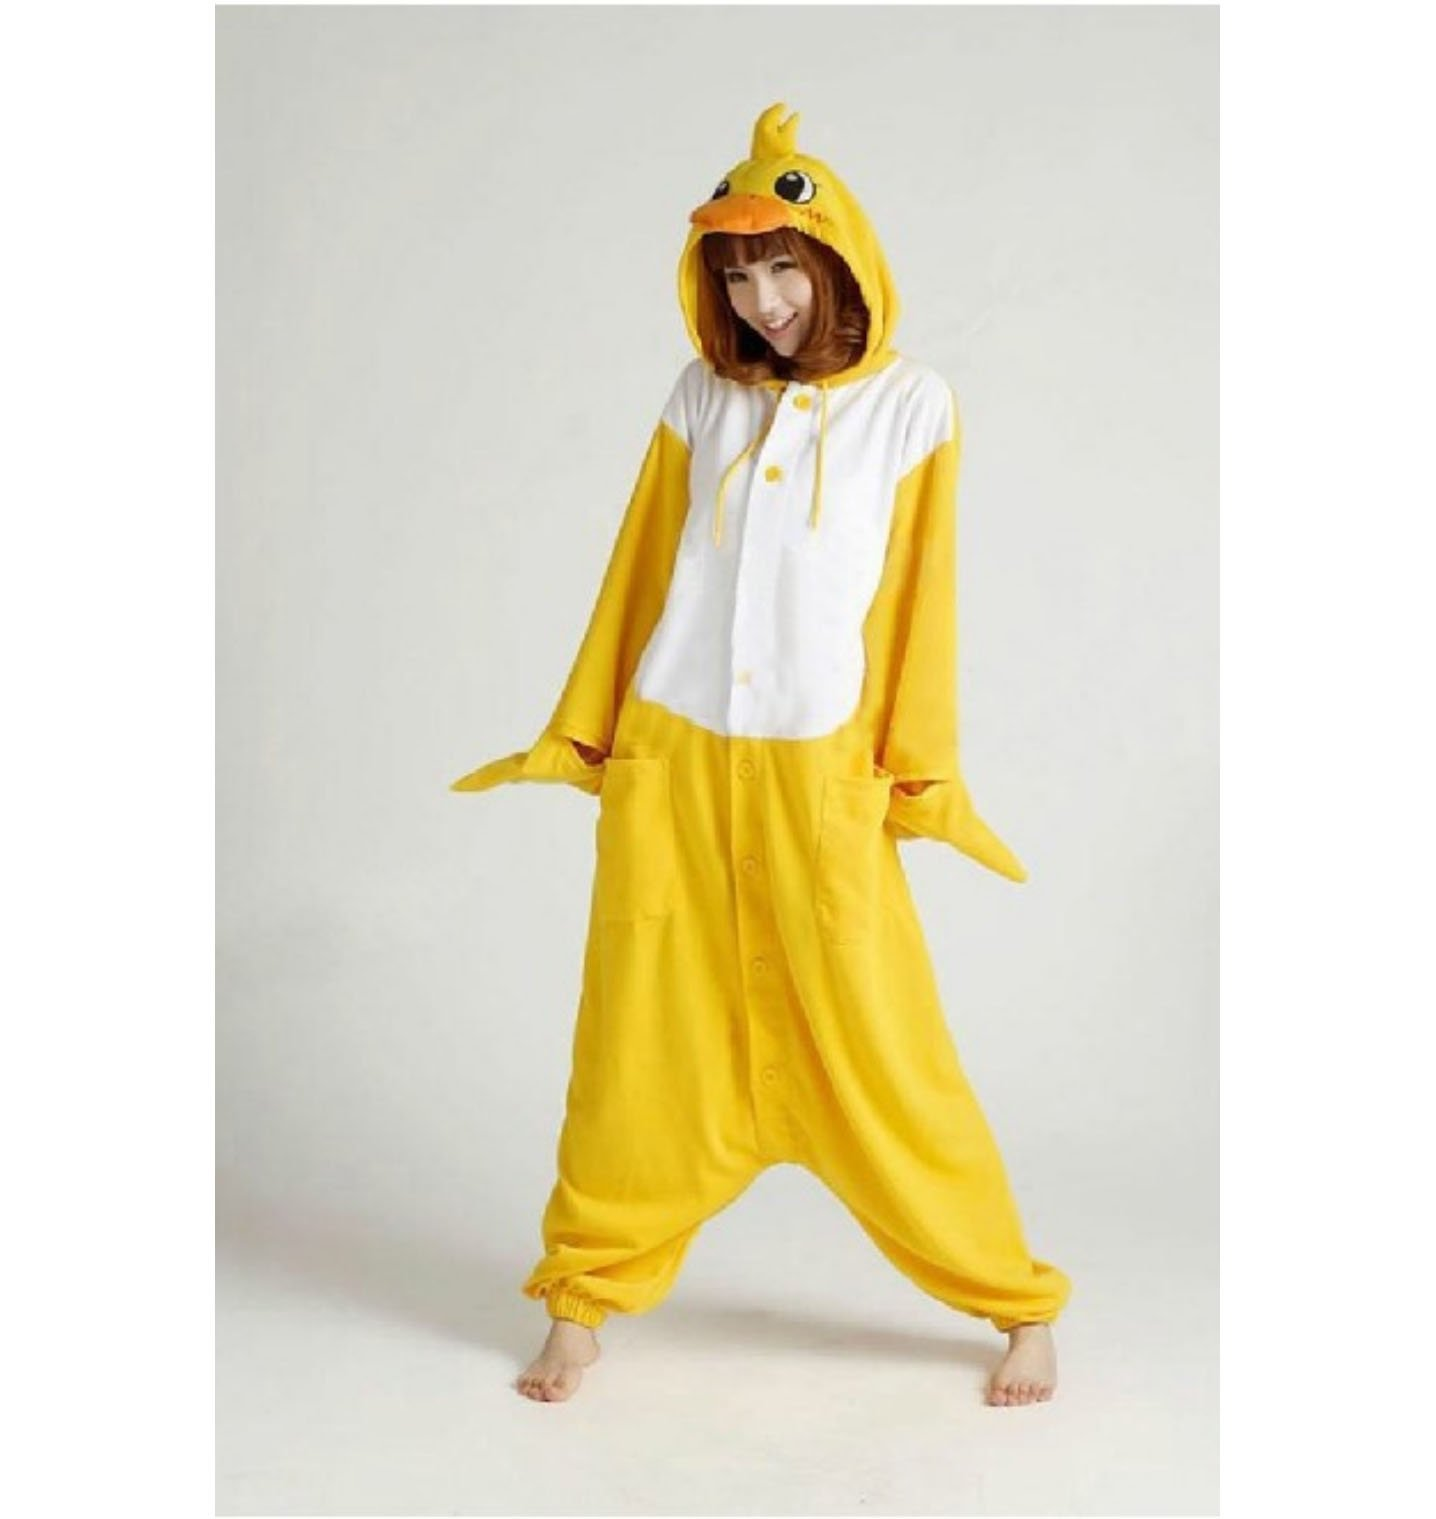 Anime Fleece Pajamas Duck Cosplay Costume Adult Hoodies Party Dress